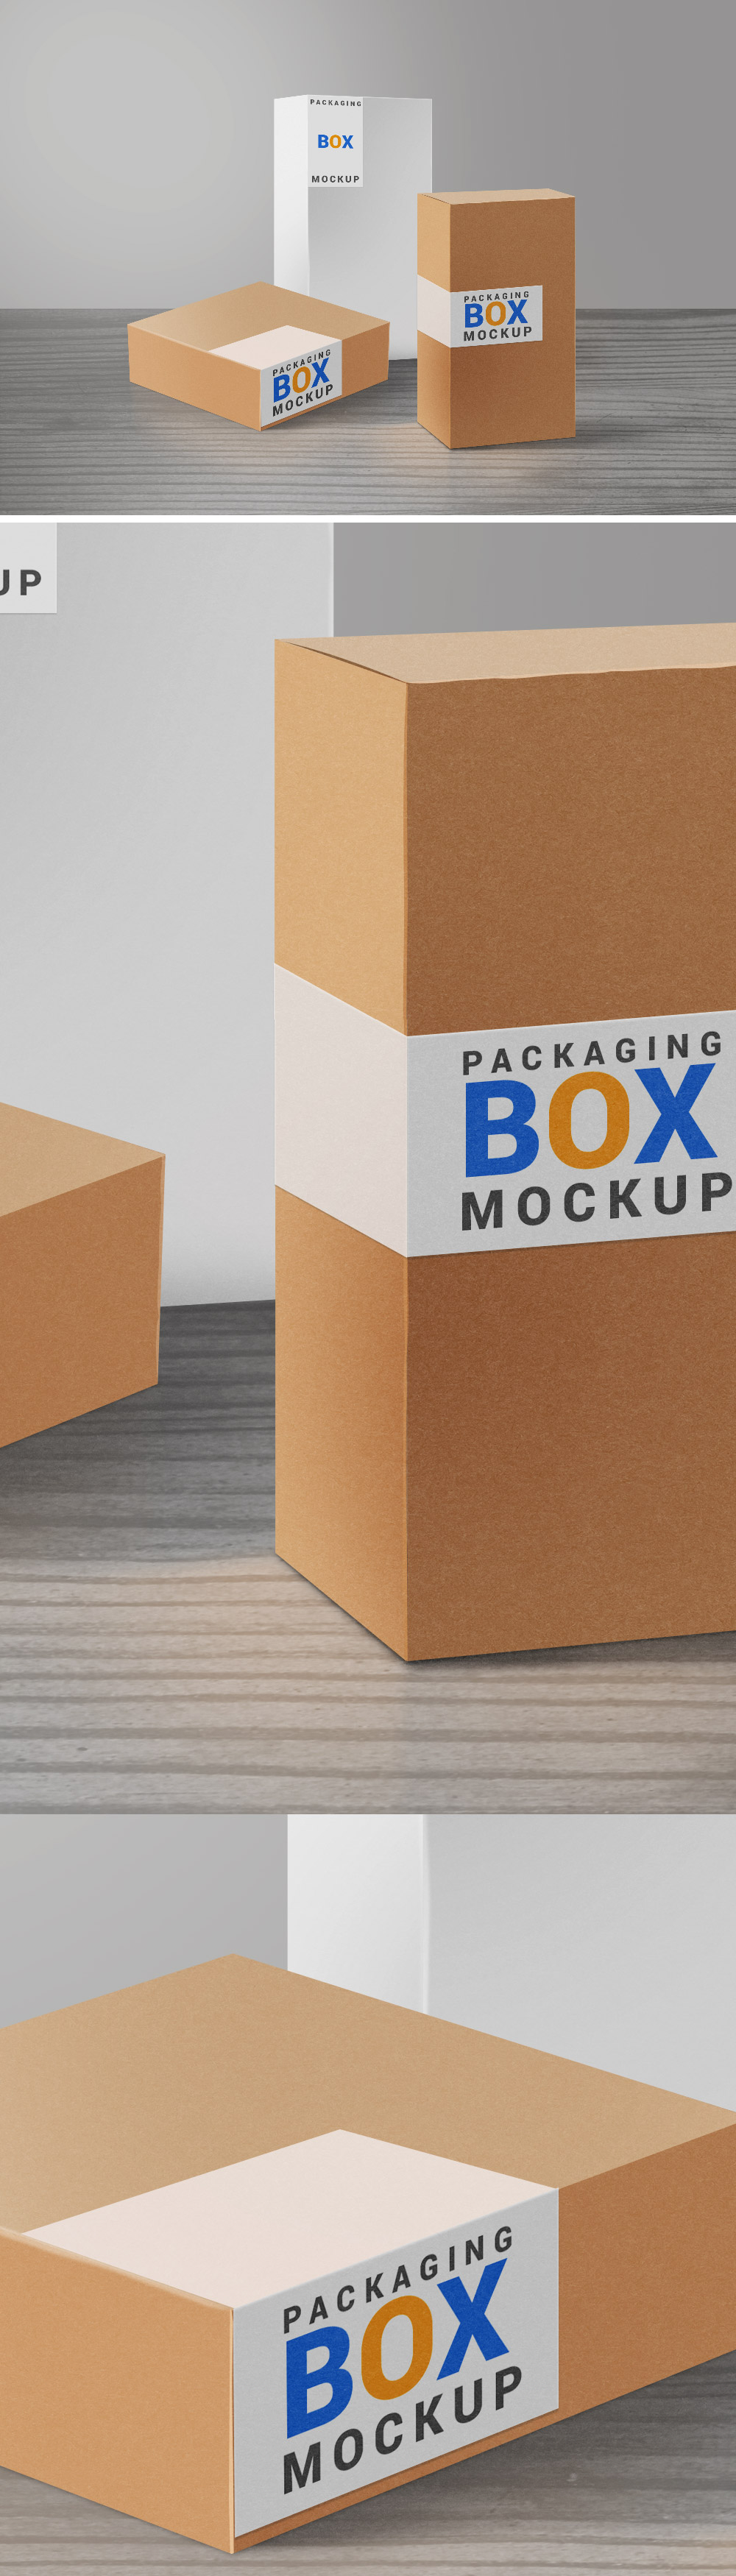 Free Packaging Boxes Mockup